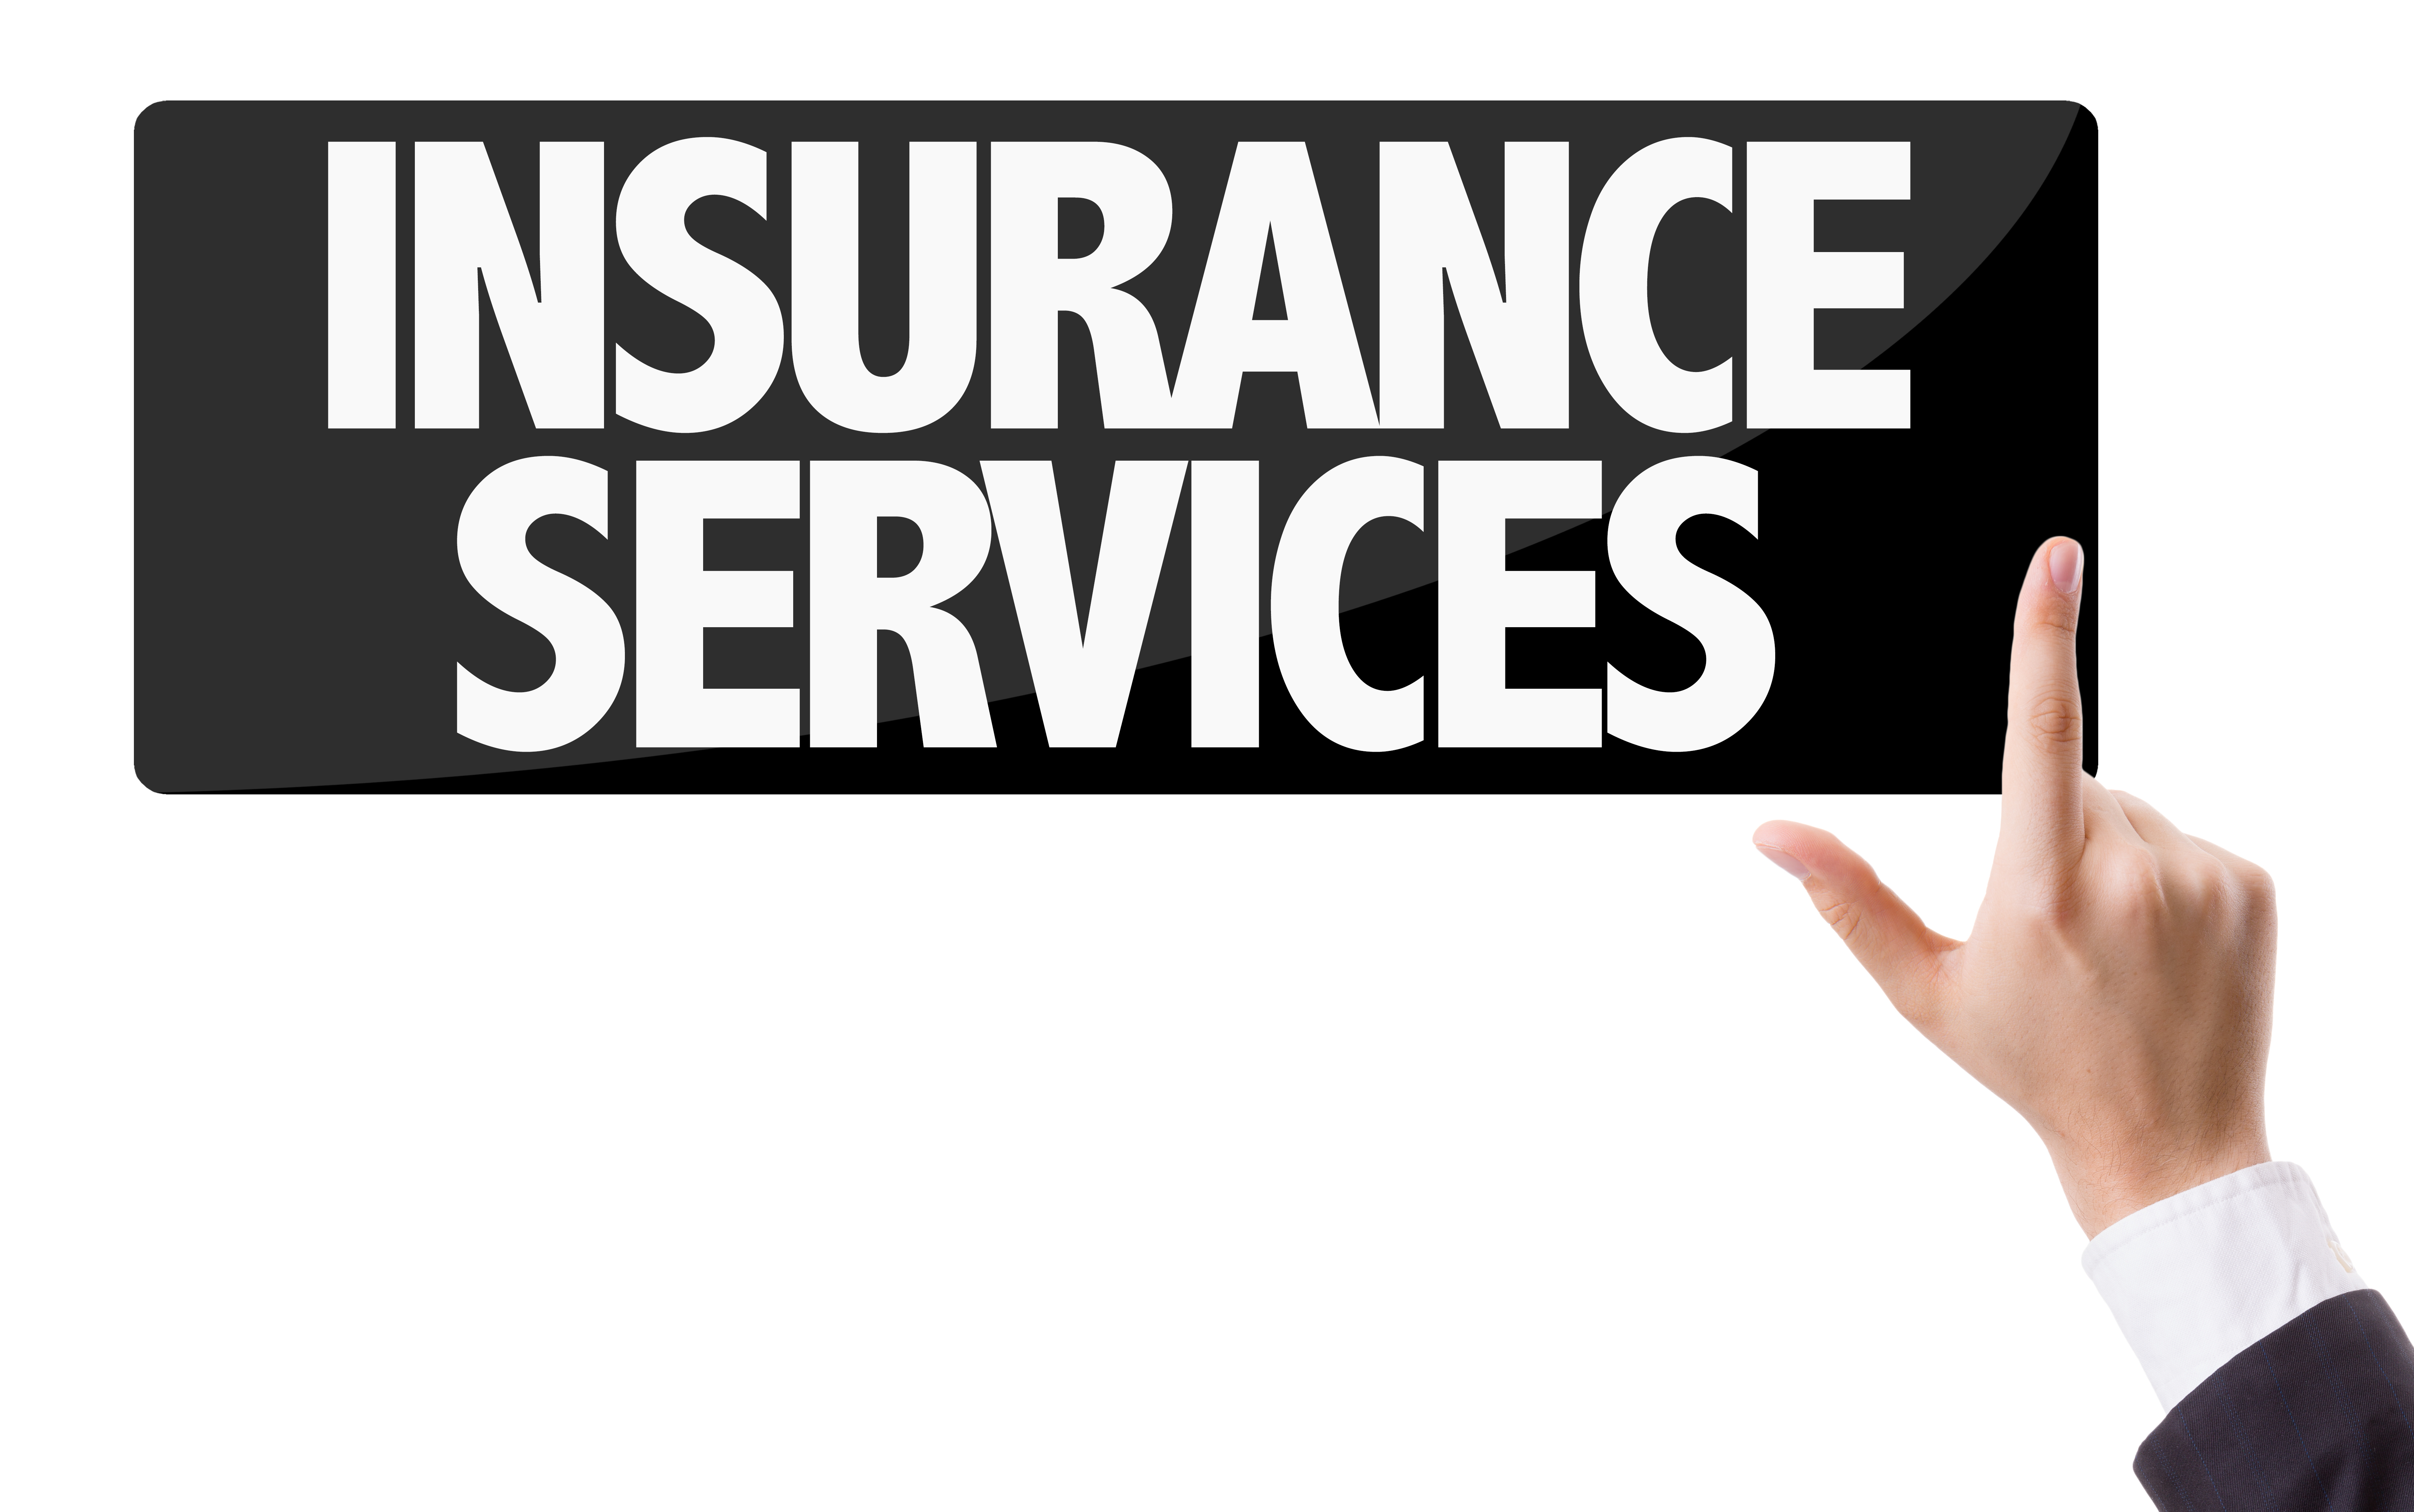 bets water damage restoration services. Make sure that you hire a certified Professional